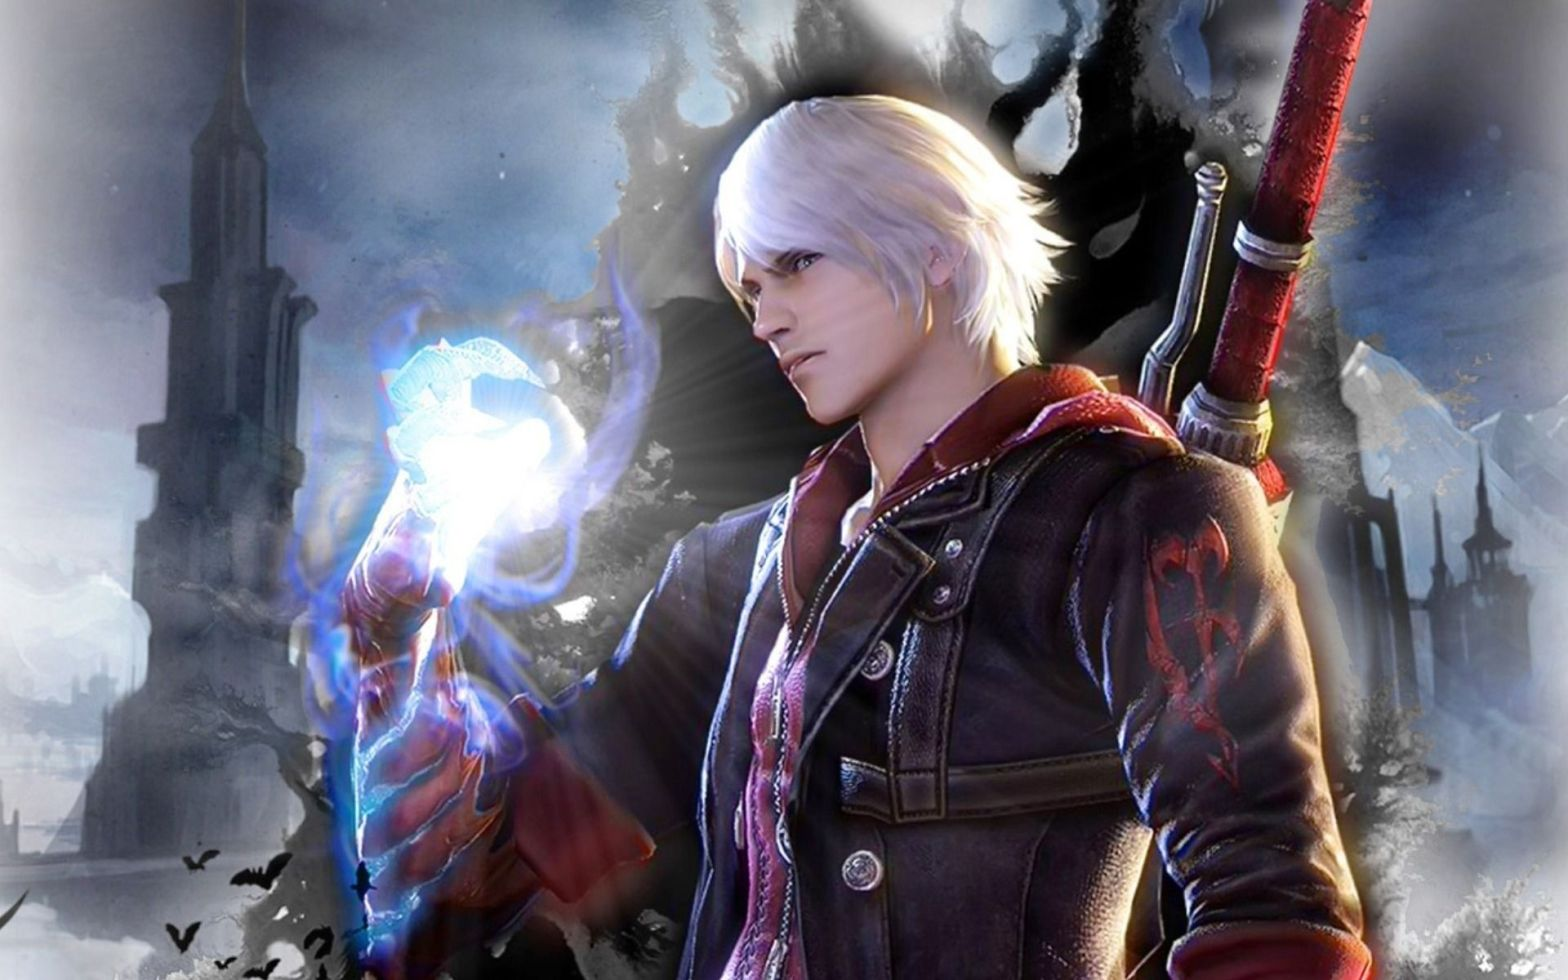 Devil May Cry 4, Games, Online Games, Video Games